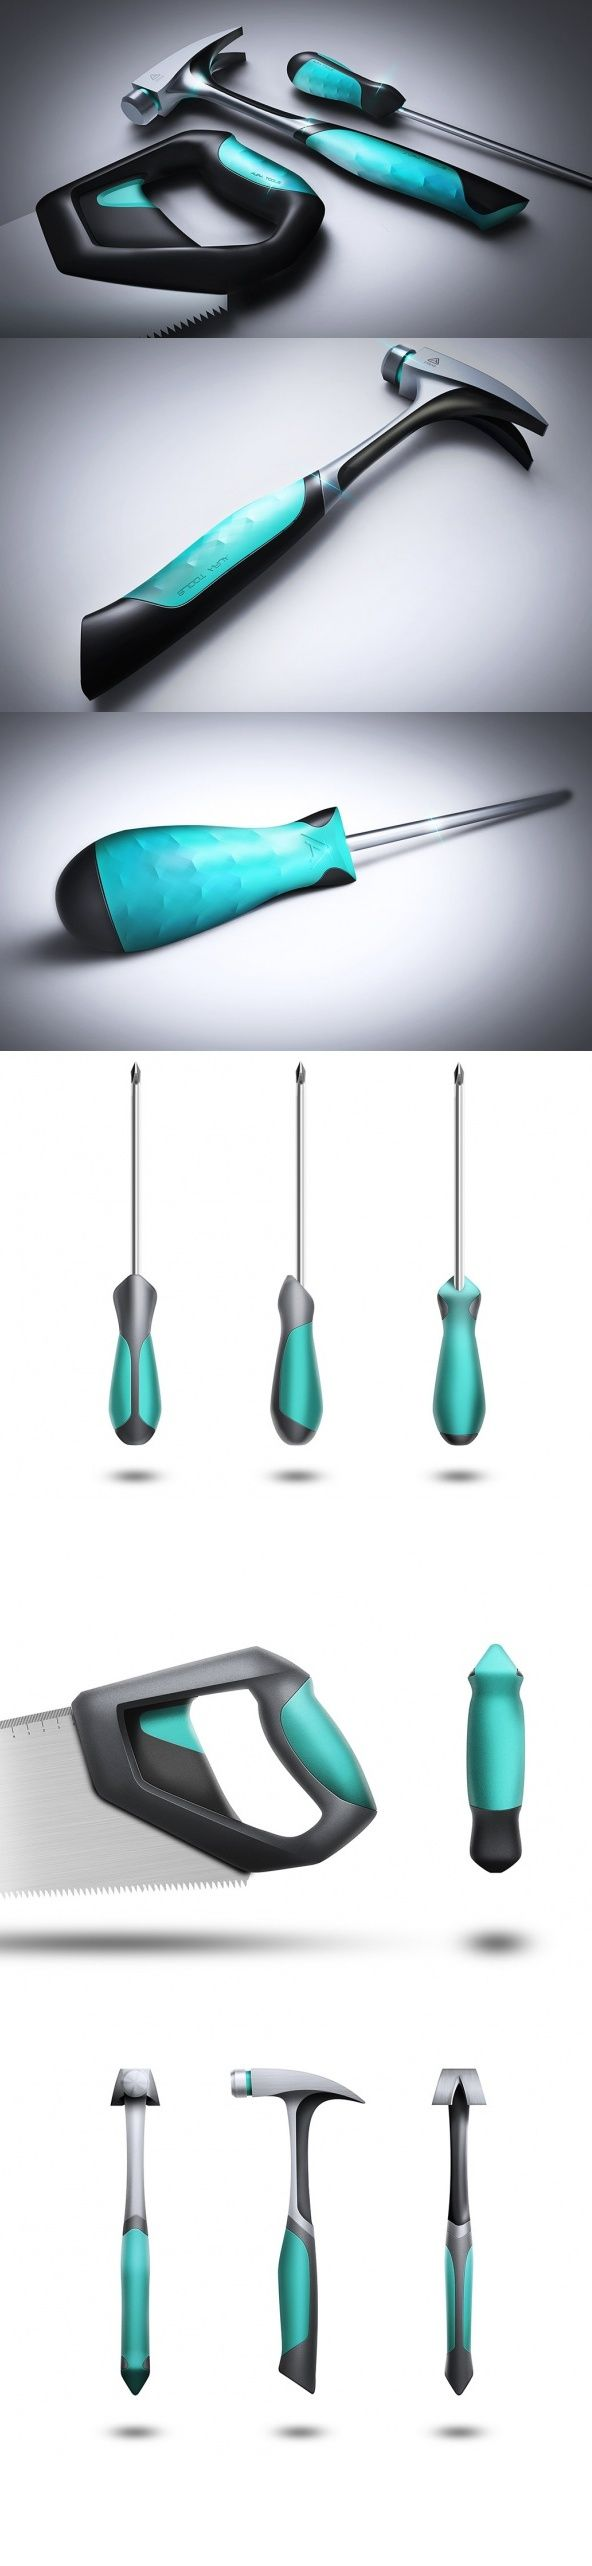 The over-moulded TPE contact points allow the user to comfortably grip each tool and efficiently complete the task at hand. The combination of these turquoise contact points, deep black body and brushed steel create a well-balanced coherent design language with an eye-catching aesthetic. #Yankodesign #Tools